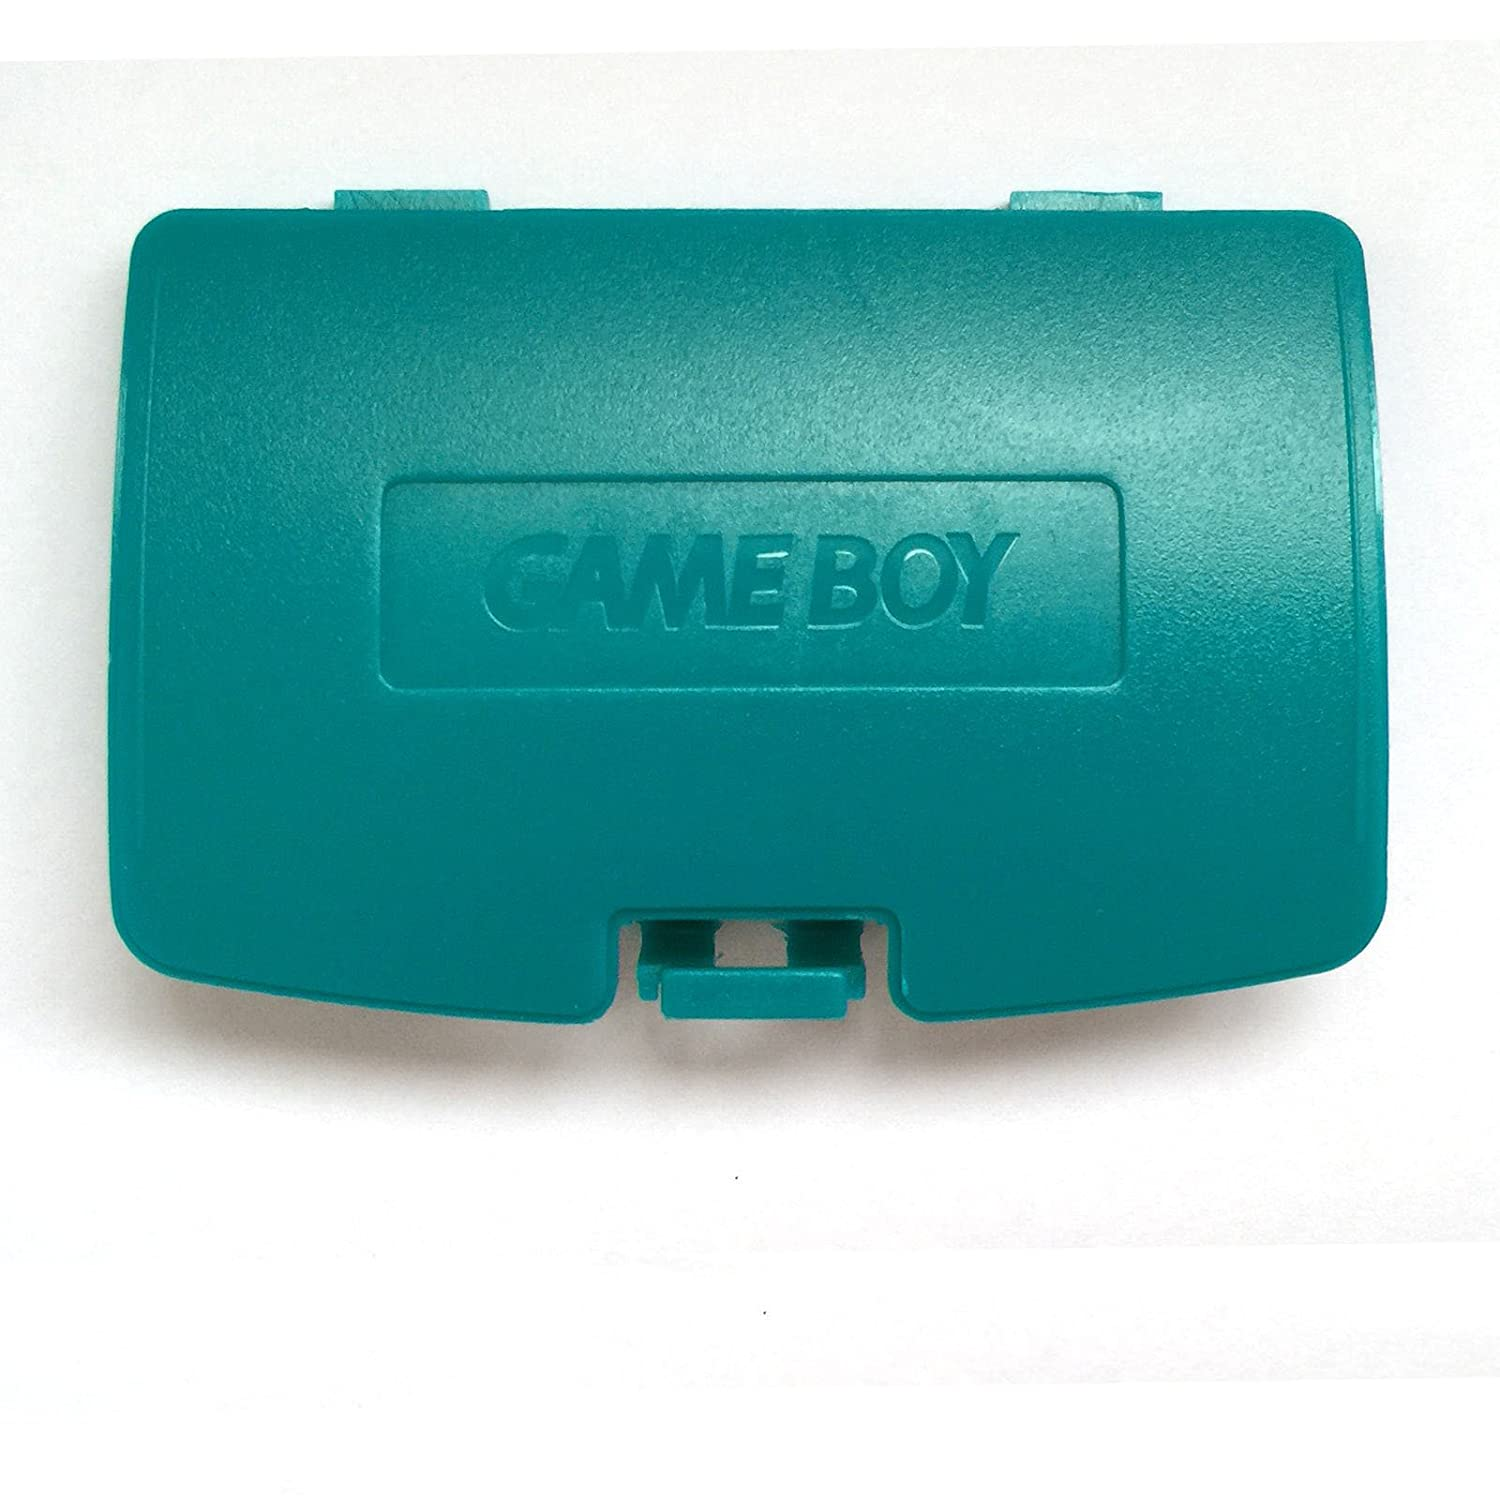 Gameboy Color GBC Game Boy Colour Replacement Battery Cover - Blue-Green NBgame